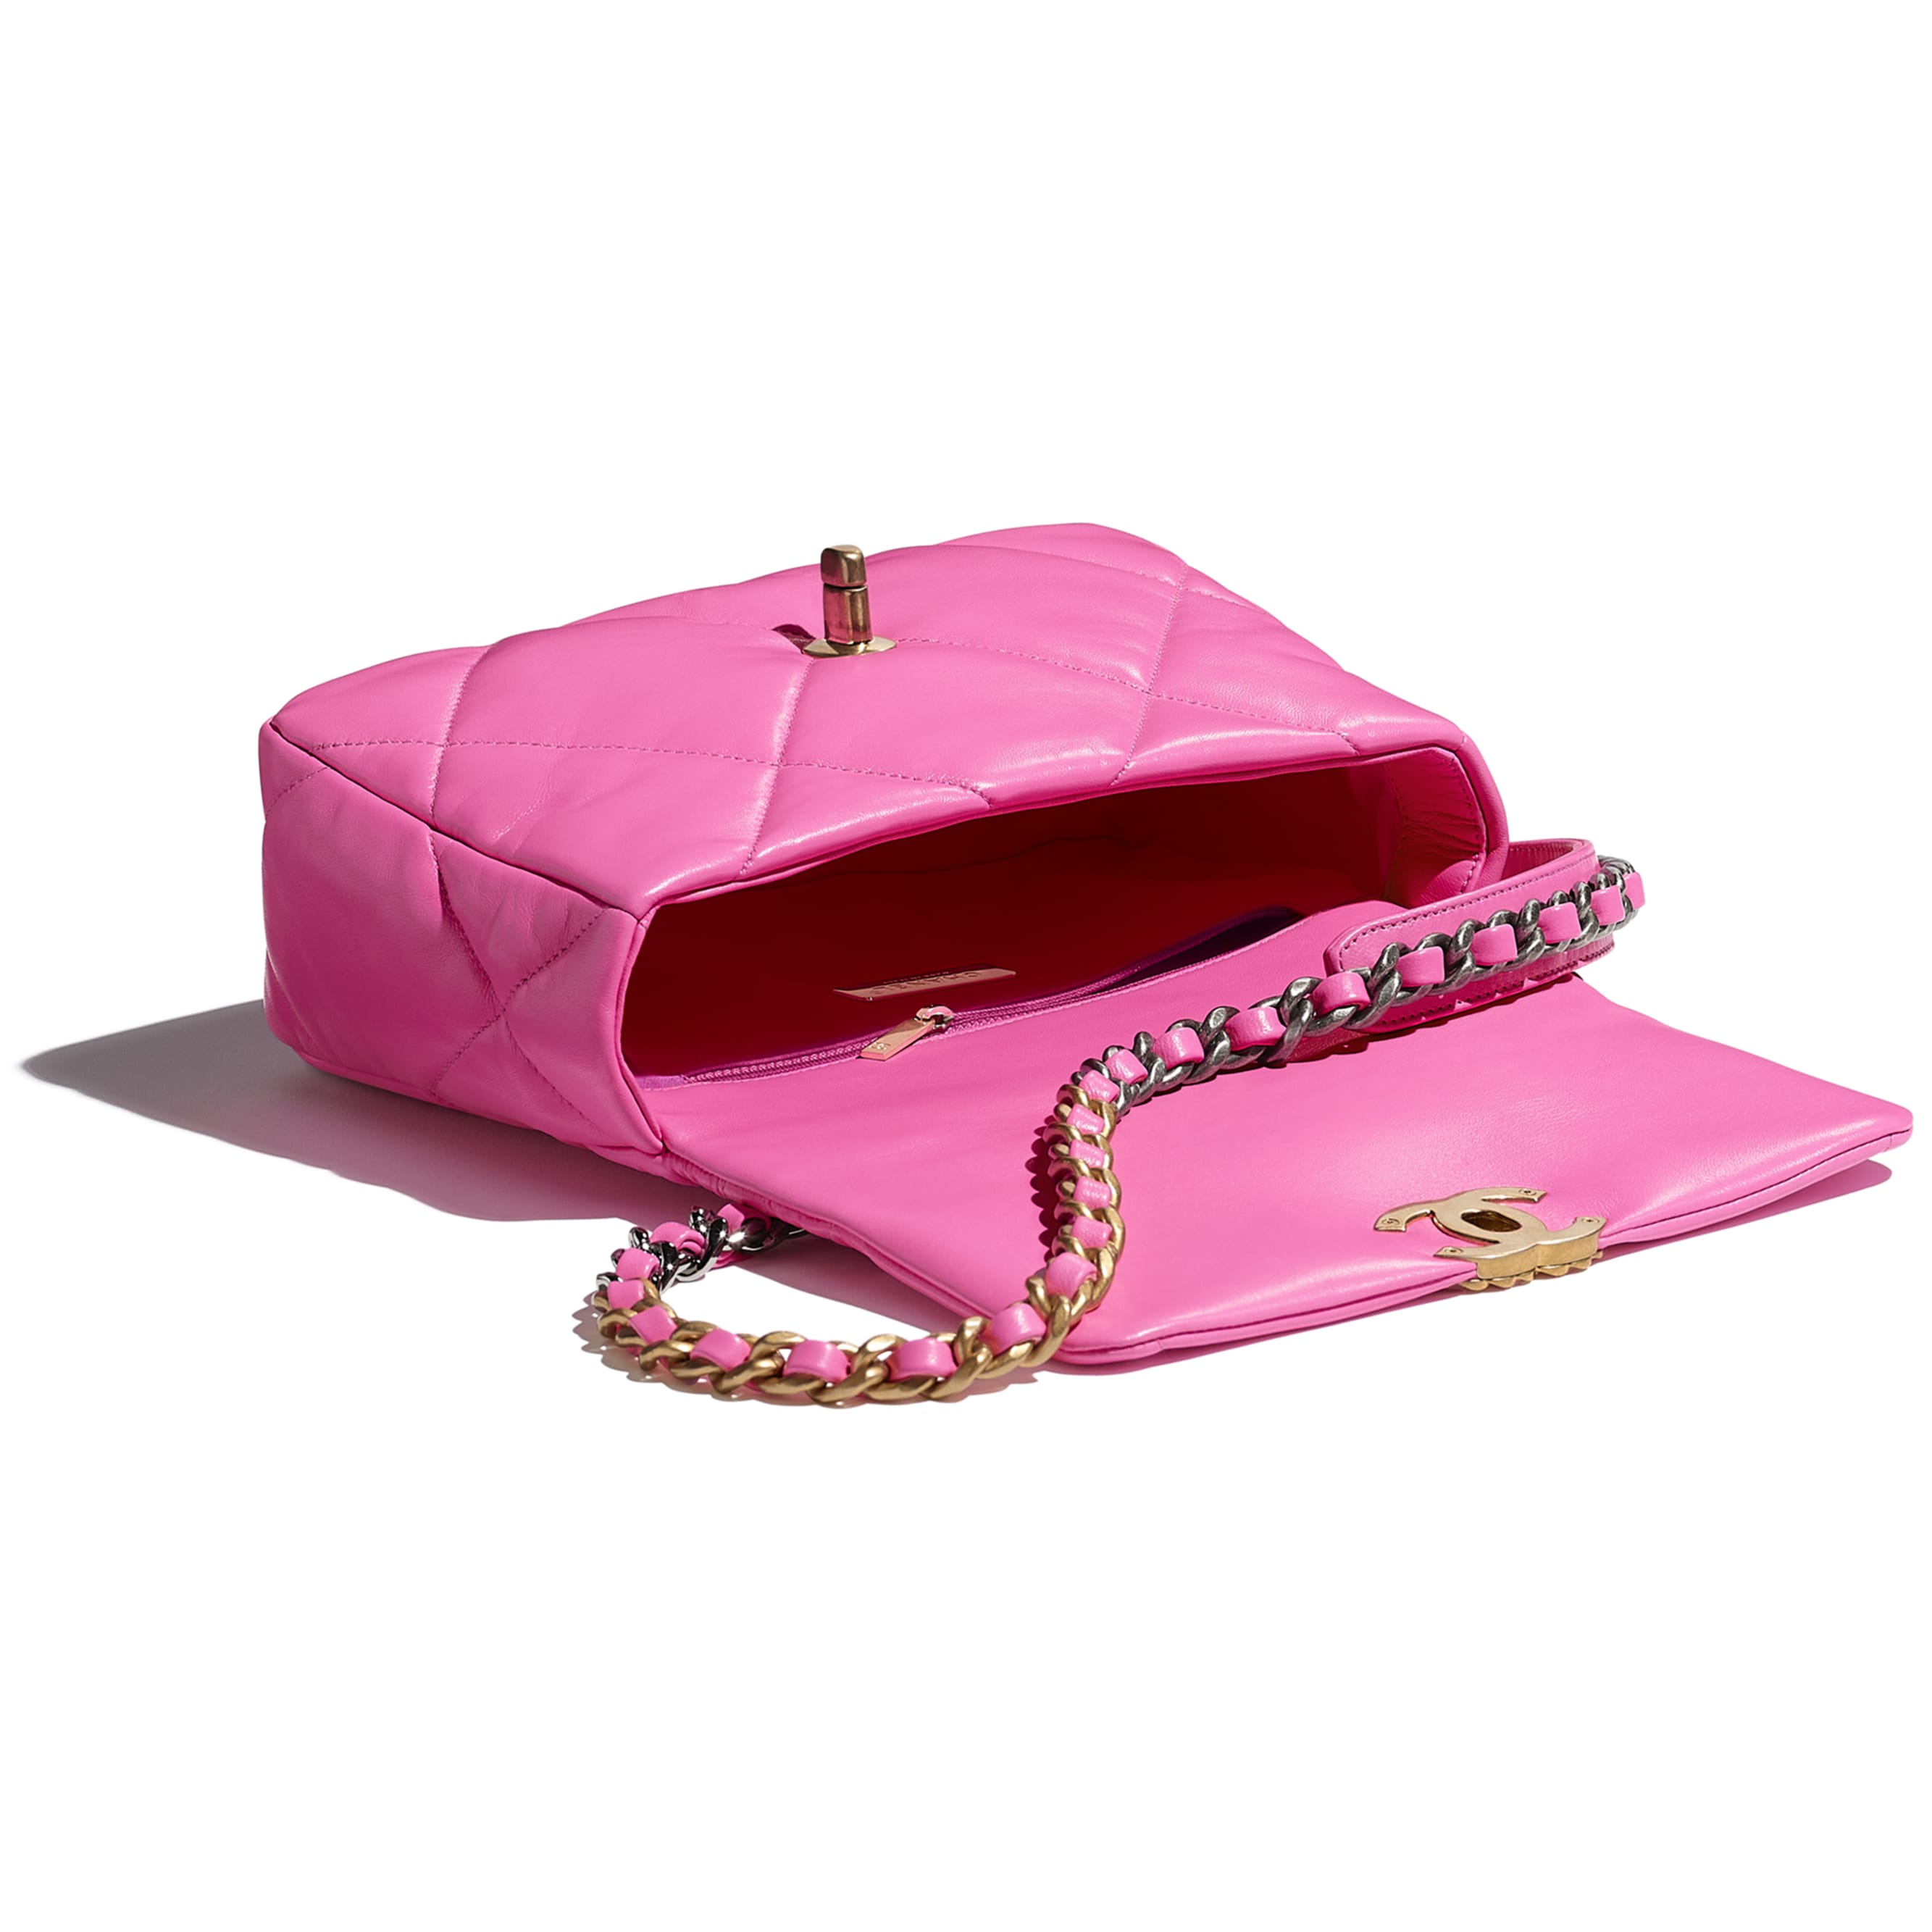 CHANEL 19 Flap Bag - Neon Pink - Shiny Lambskin, Gold-Tone, Silver-Tone & Ruthenium-Finish Metal - CHANEL - Other view - see standard sized version